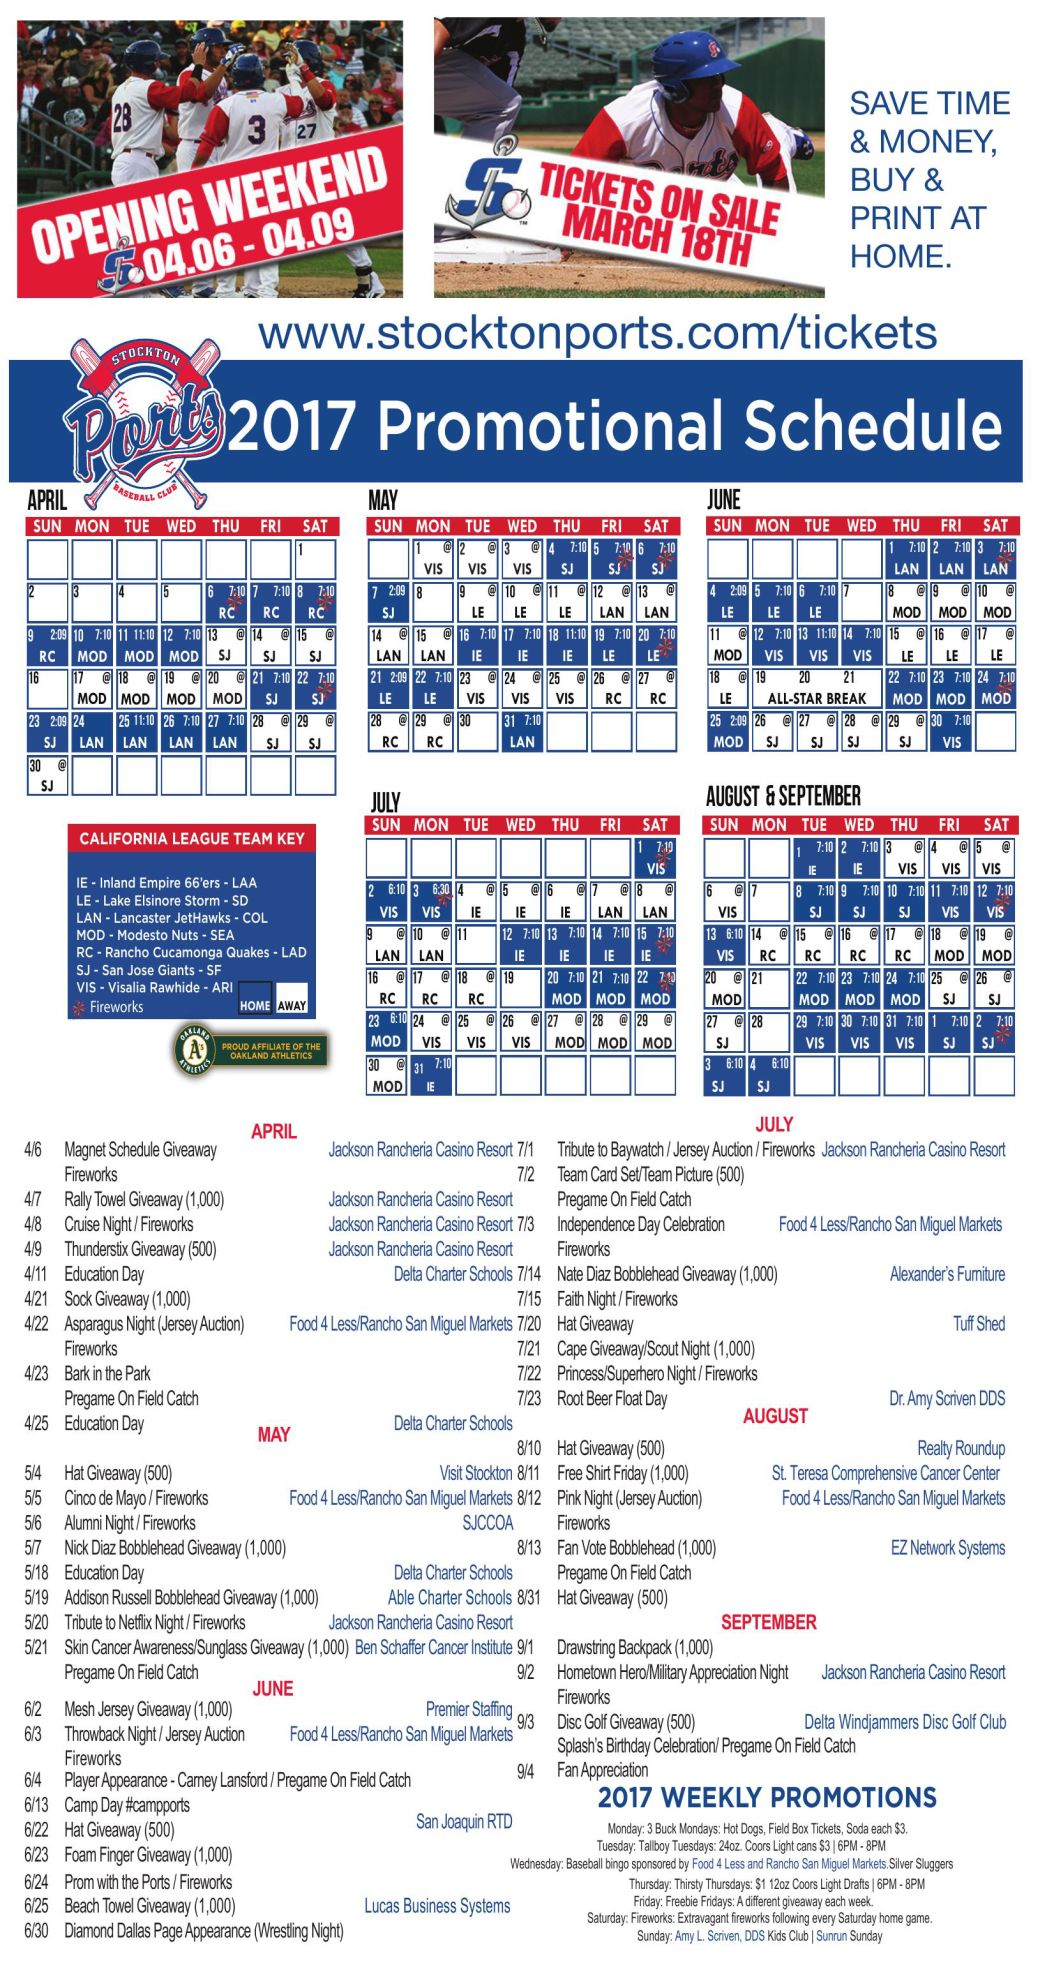 stockton ports schedule and promotions | | ledger.news